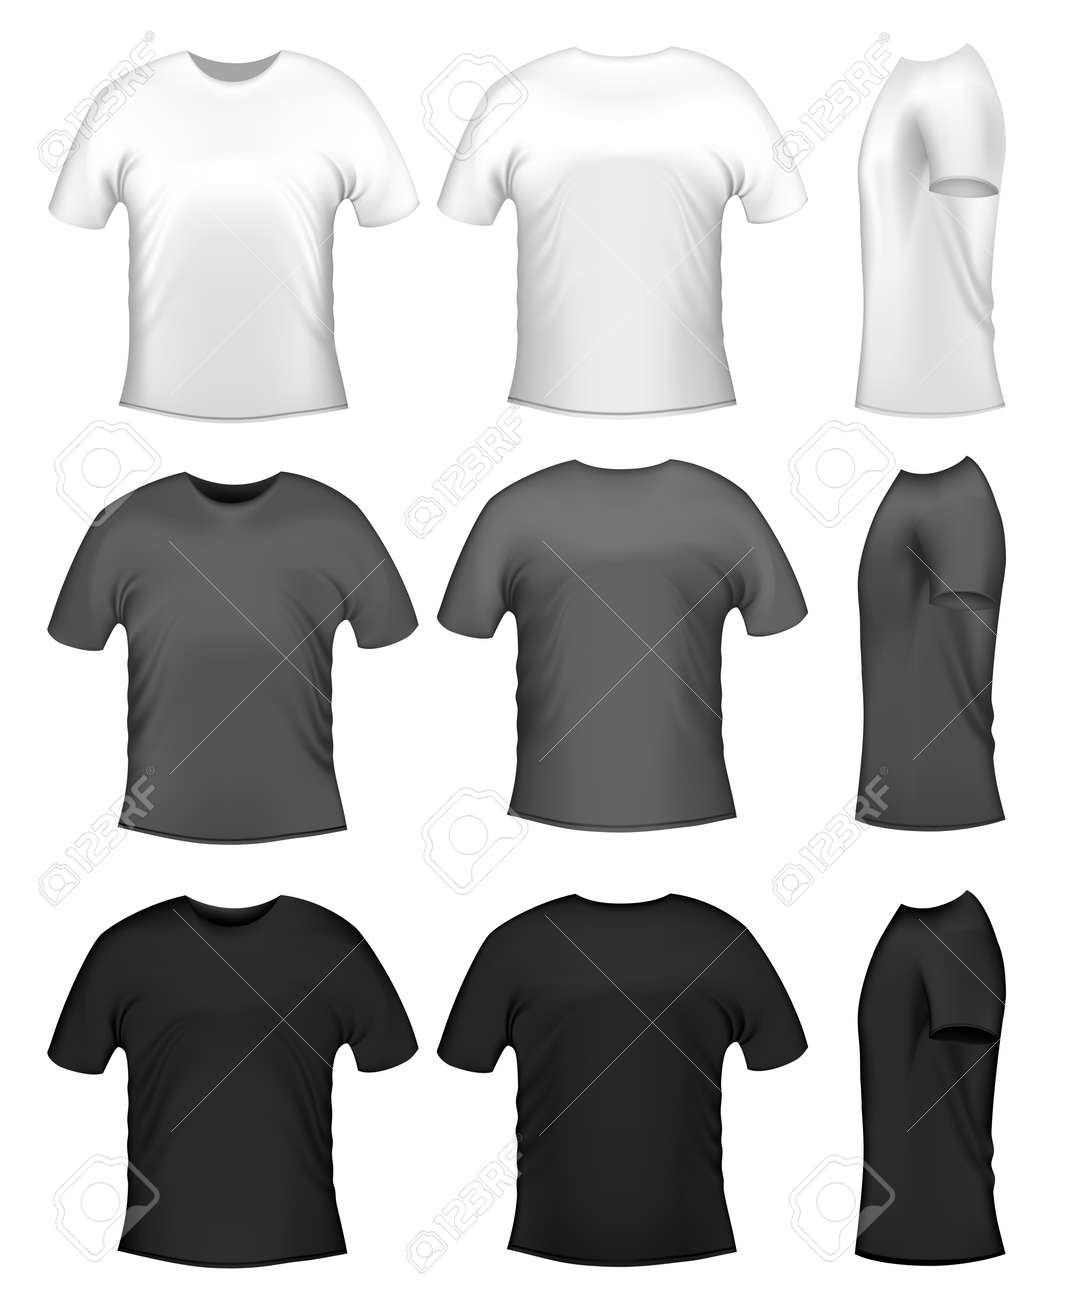 Black t shirt vector free - Men S T Shits Collection Of Diferent Colors Royalty Free Cliparts